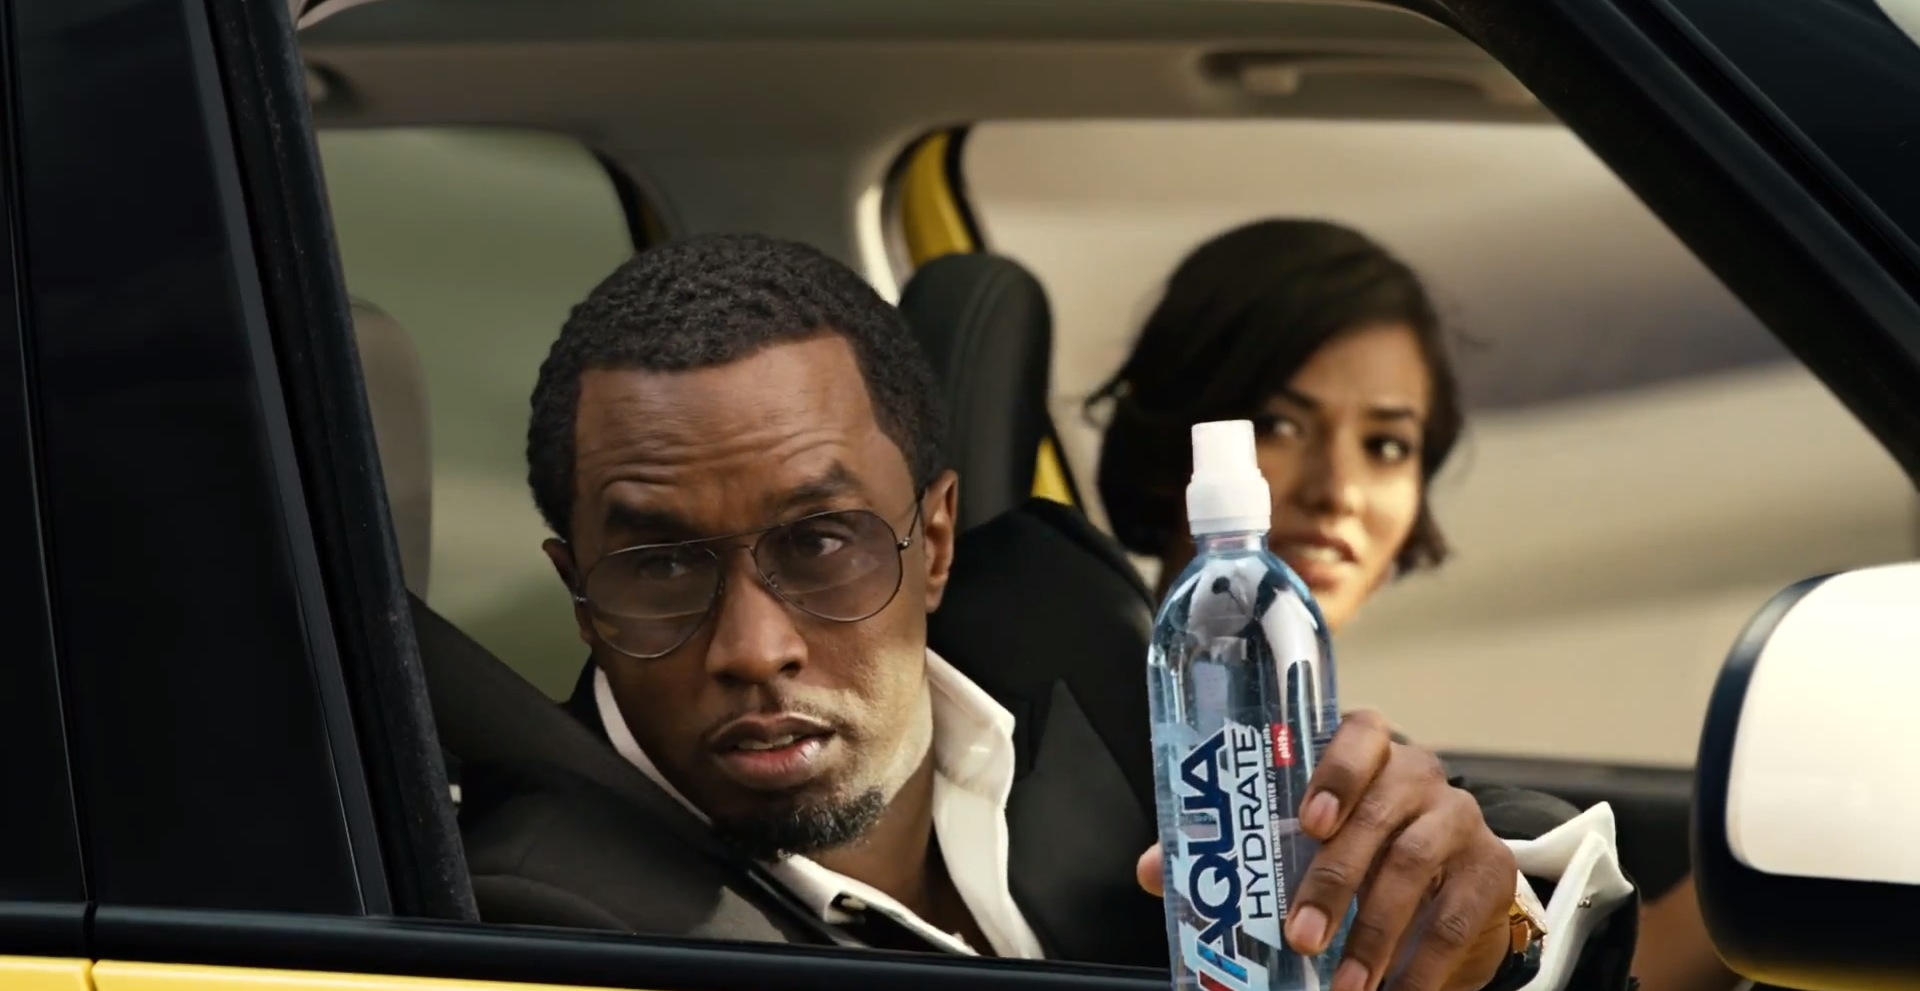 Fiat L Mirage Commercial Features P Diddy Video